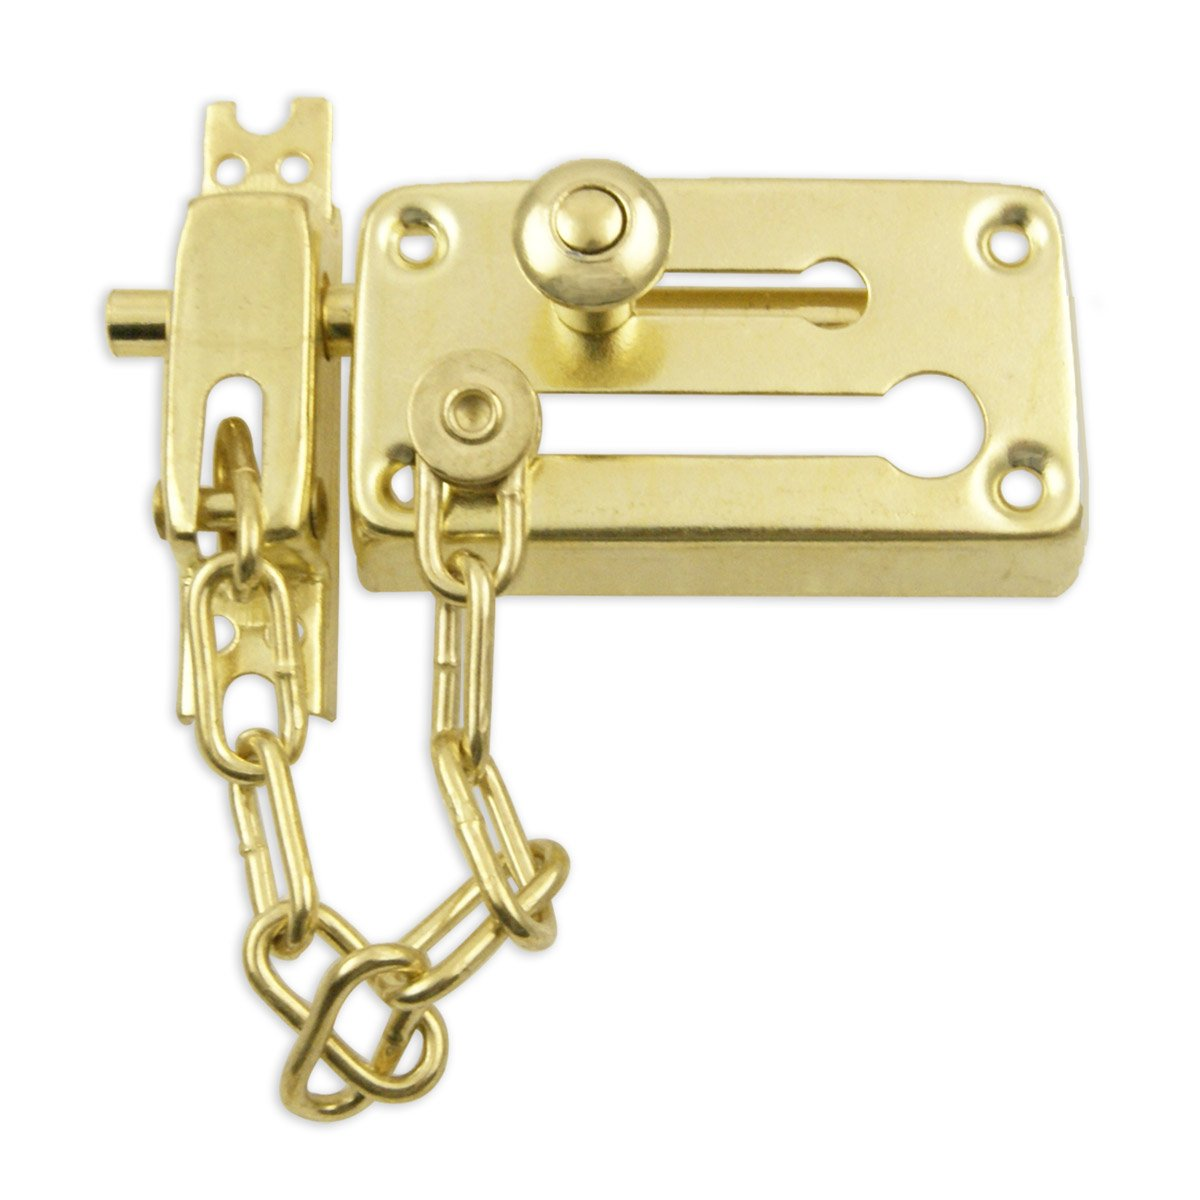 Door Lock Chain Heavy Duty Combination Door Chain Dead Bolt Lock Set Chain